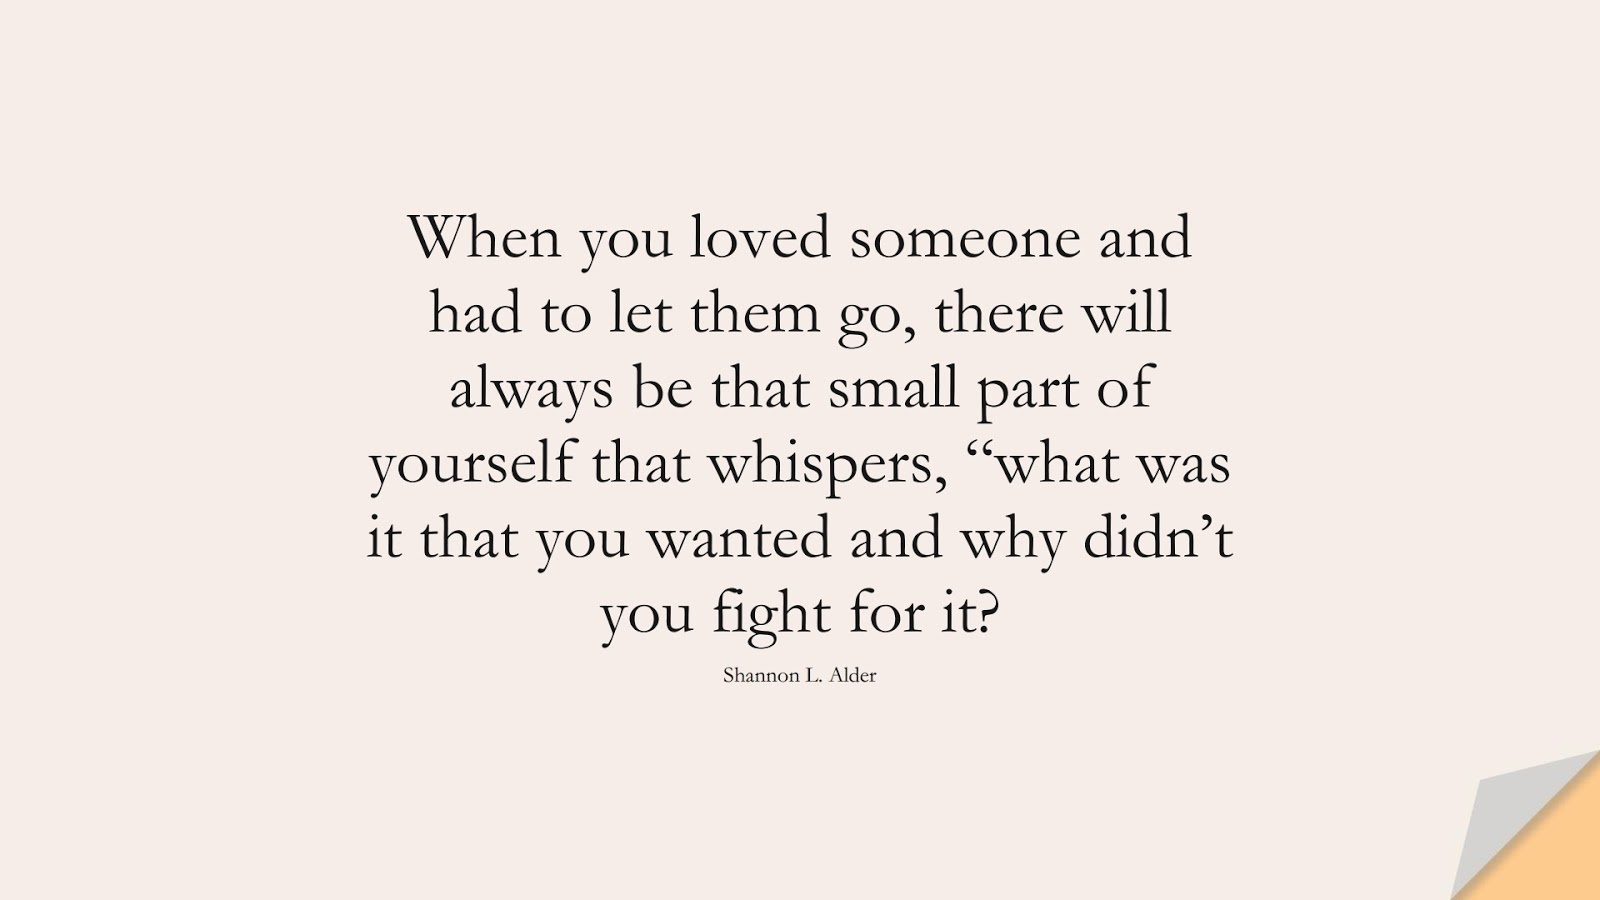 """When you loved someone and had to let them go, there will always be that small part of yourself that whispers, """"what was it that you wanted and why didn't you fight for it? (Shannon L. Alder);  #FamilyQuotes"""